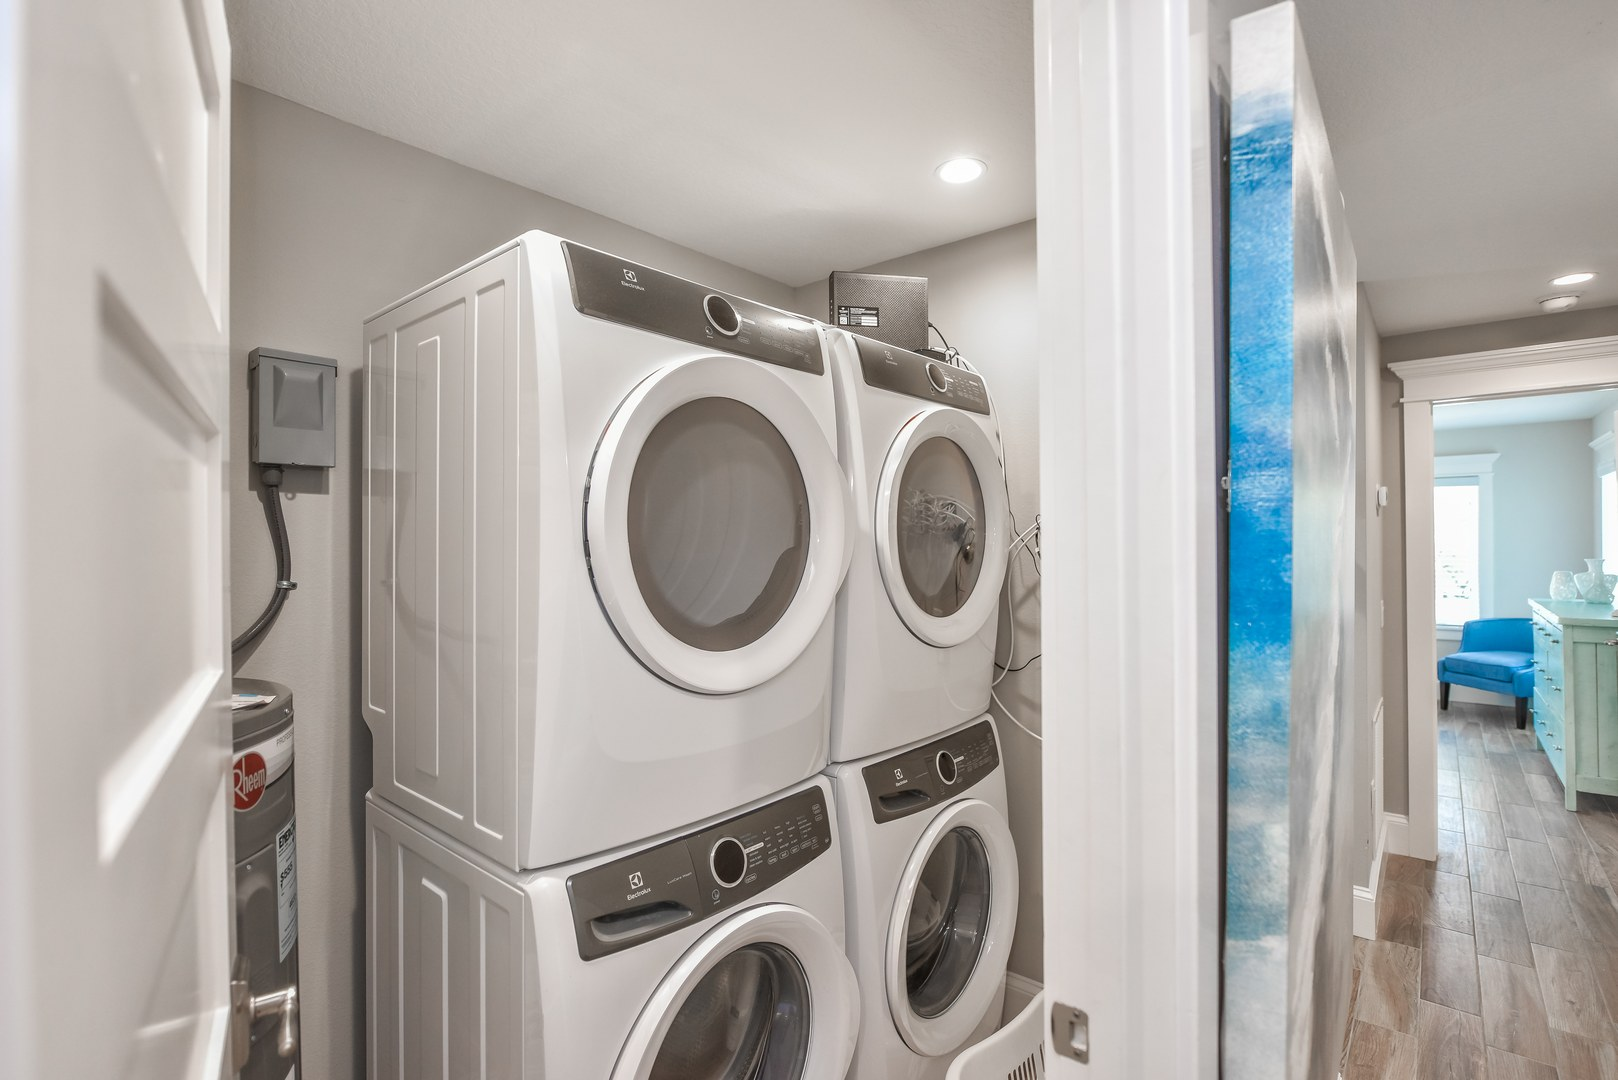 2 Sets of Washers and Dryers